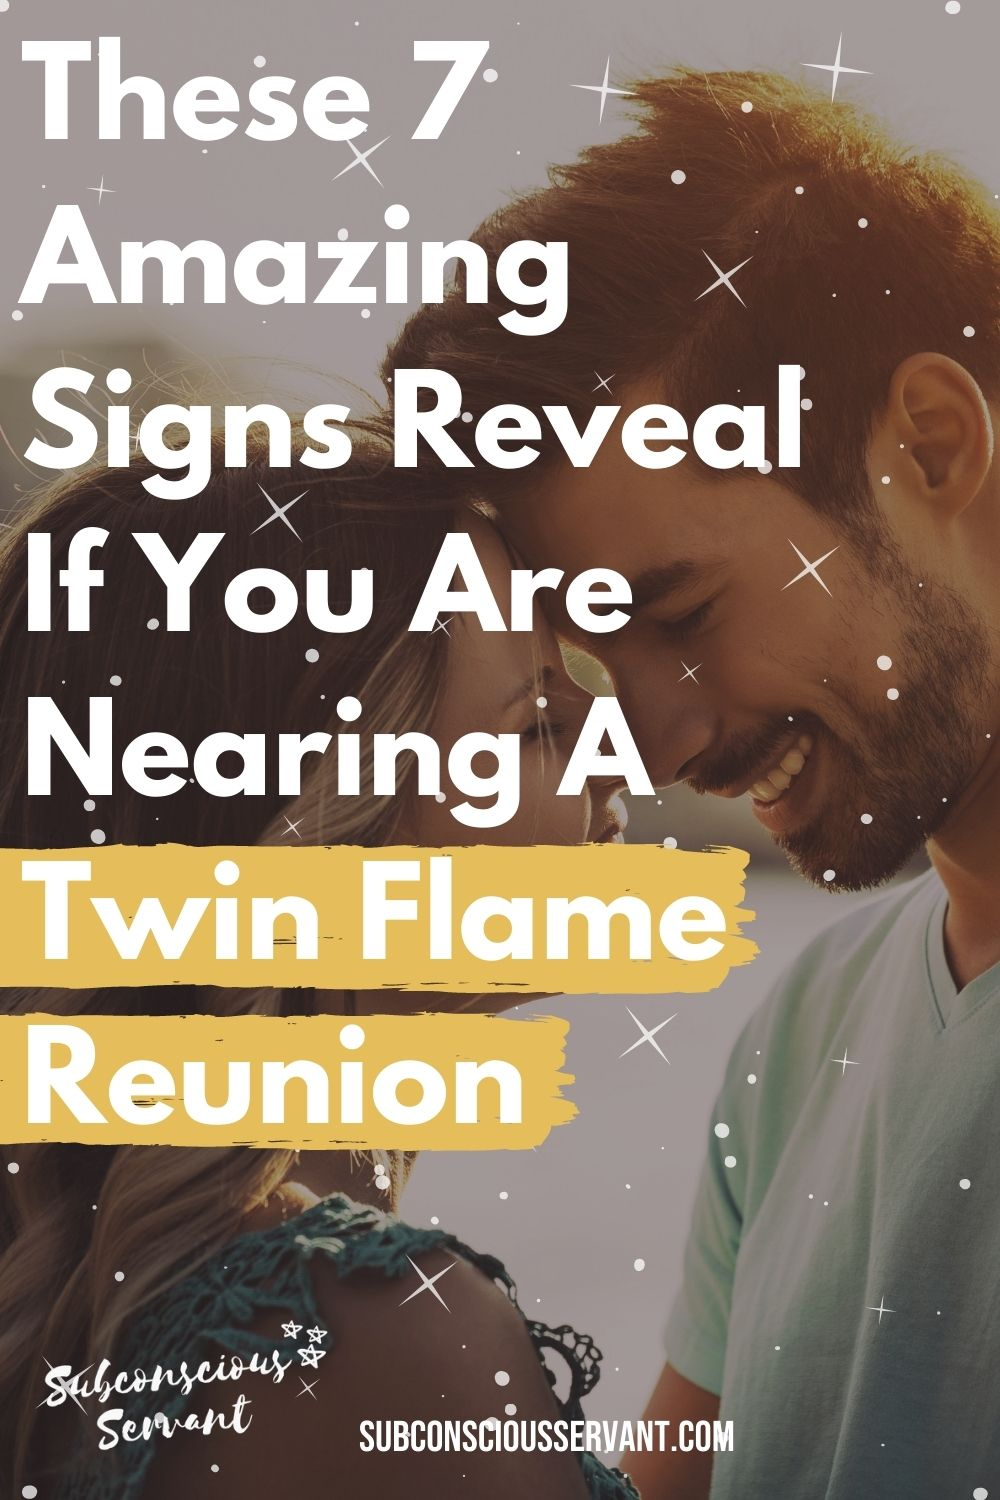 Nearing A Twin Flame Reunion? These 7 Amazing Signs Reveal If You Are